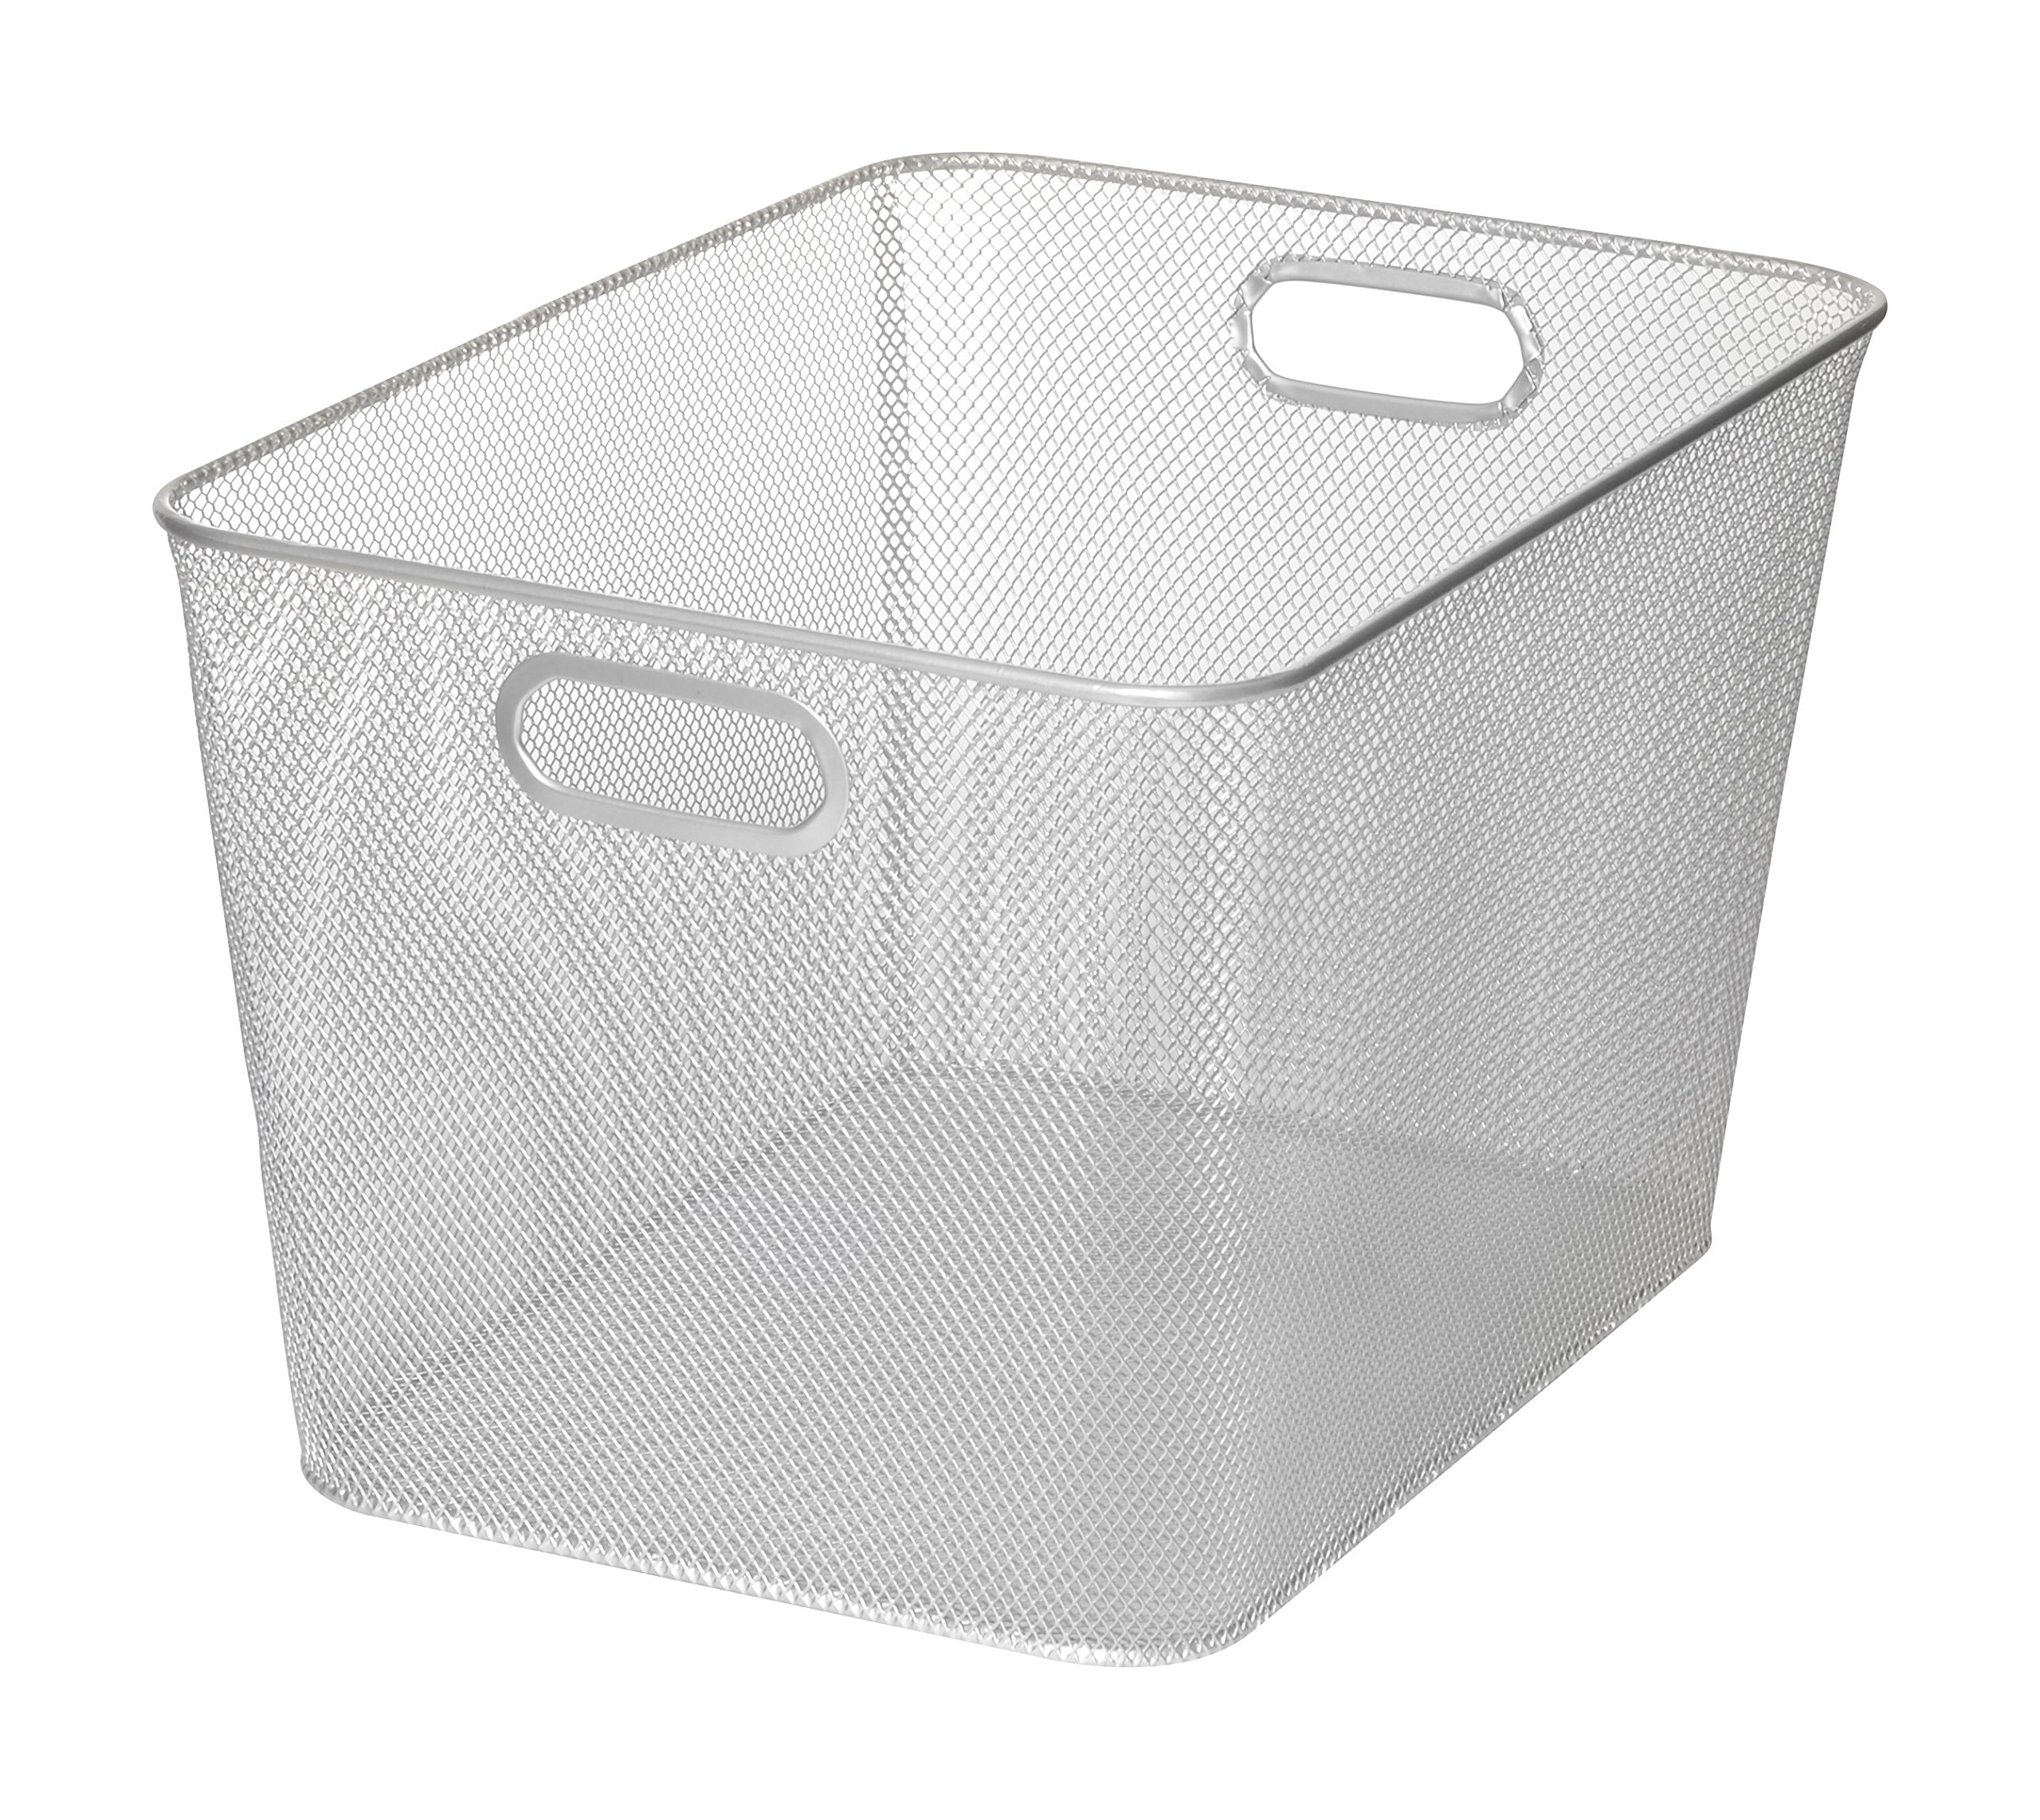 Silver Mesh Open Bin Storage Basket for Cleaning Supplies Laundry Etc. Size 14x10x9 Model #1115 by Ybmhome